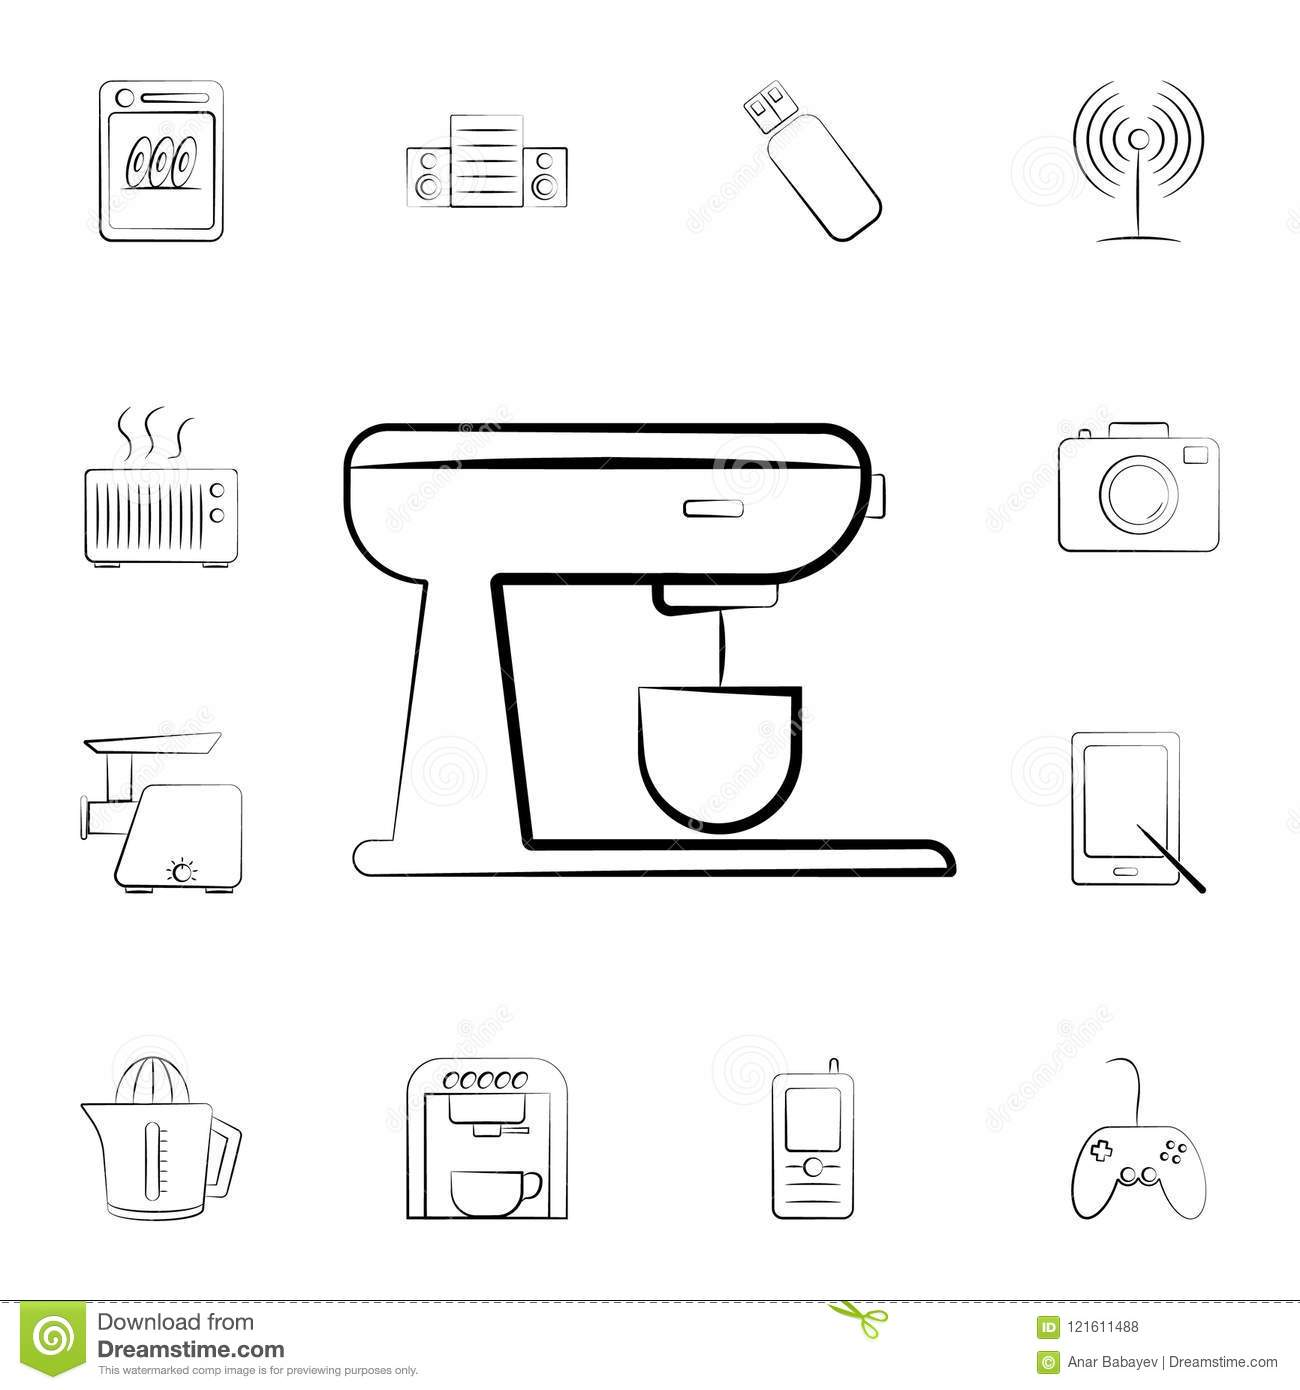 oven icon. Detailed set of home appliances. Premium graphic design. One of the collection icons for websites, web design, mobile a